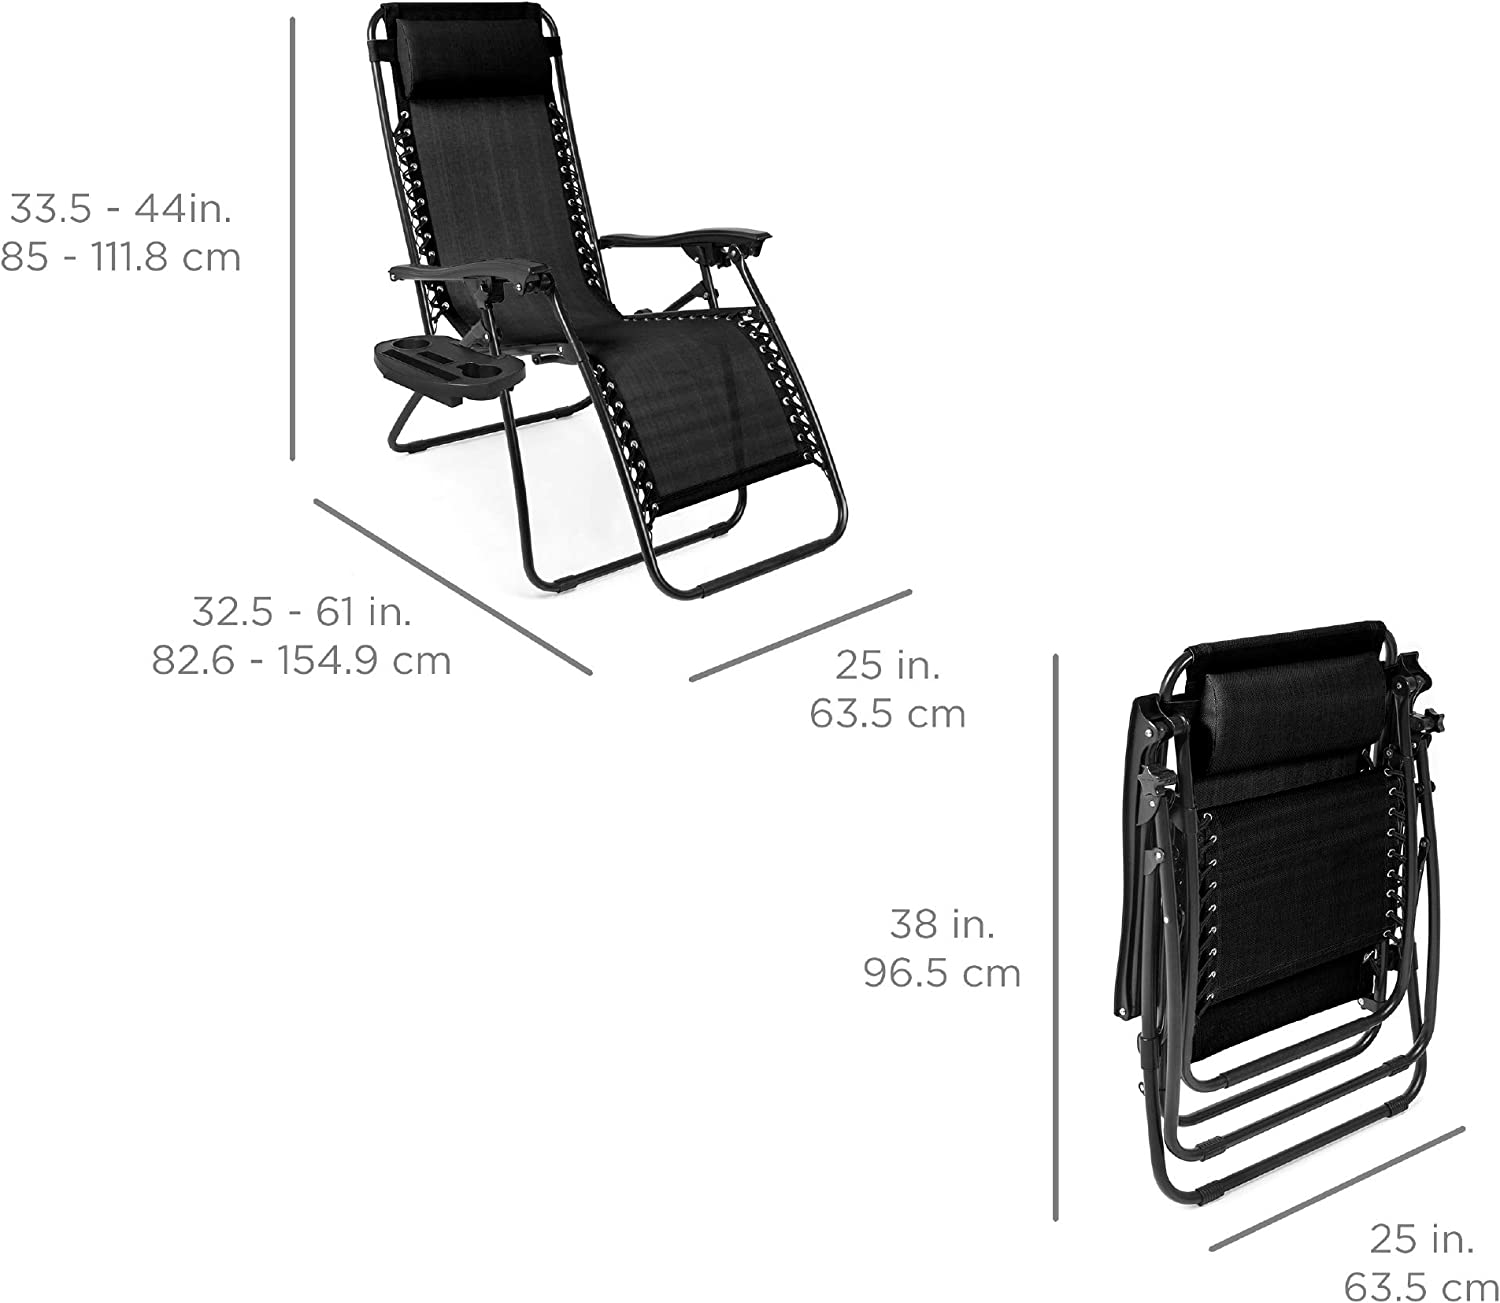 Best Choice Products Zero Gravity Chair dimensions